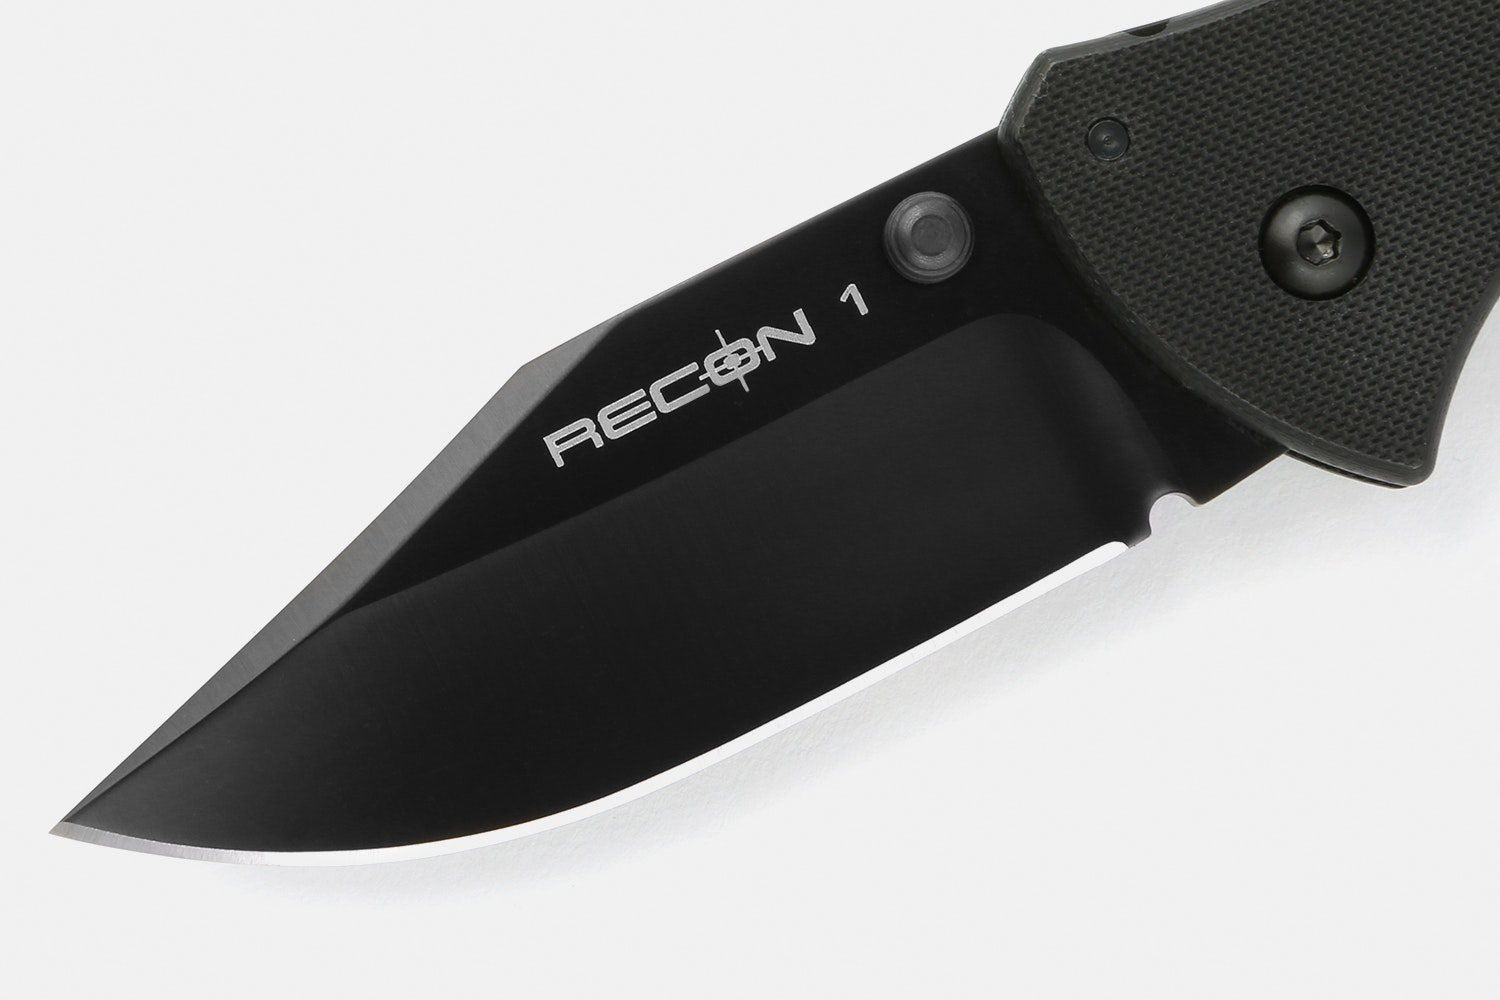 Cold Steel Recon 1 Mini CTS XHP Folding Knives